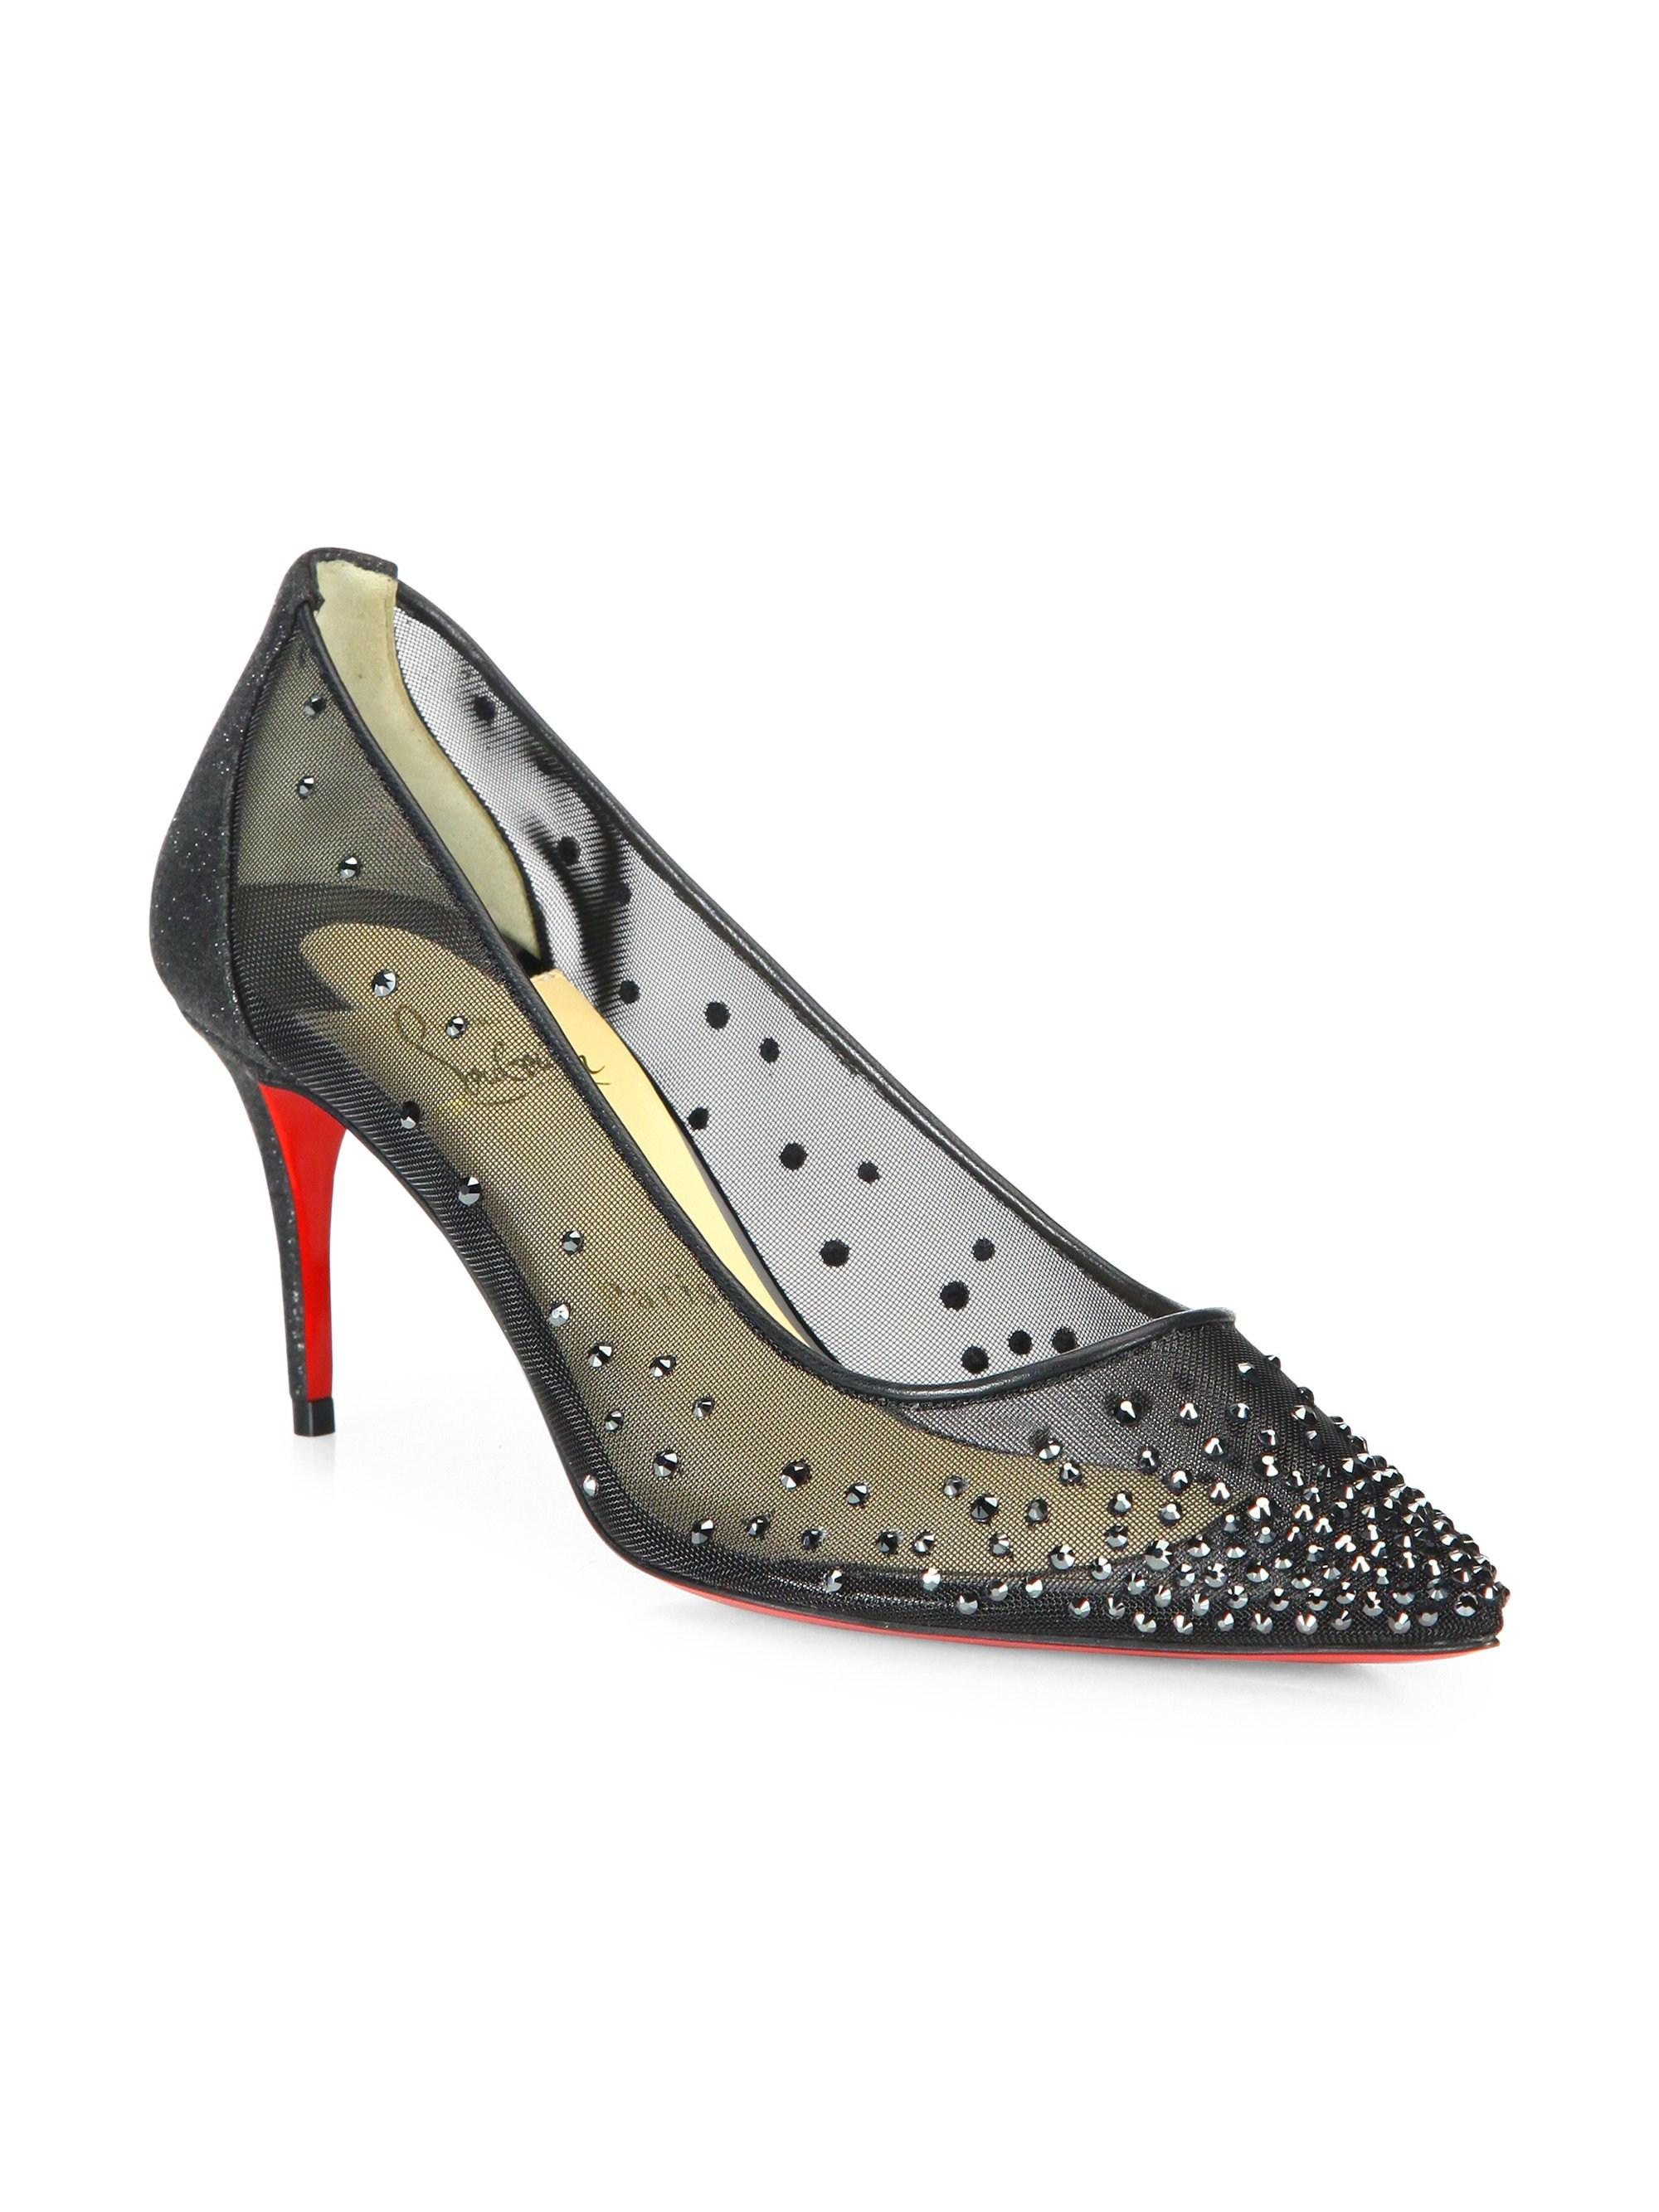 61c9932c4af3 Christian Louboutin Women s Follies Strass 70 Illusion Leather Pumps ...